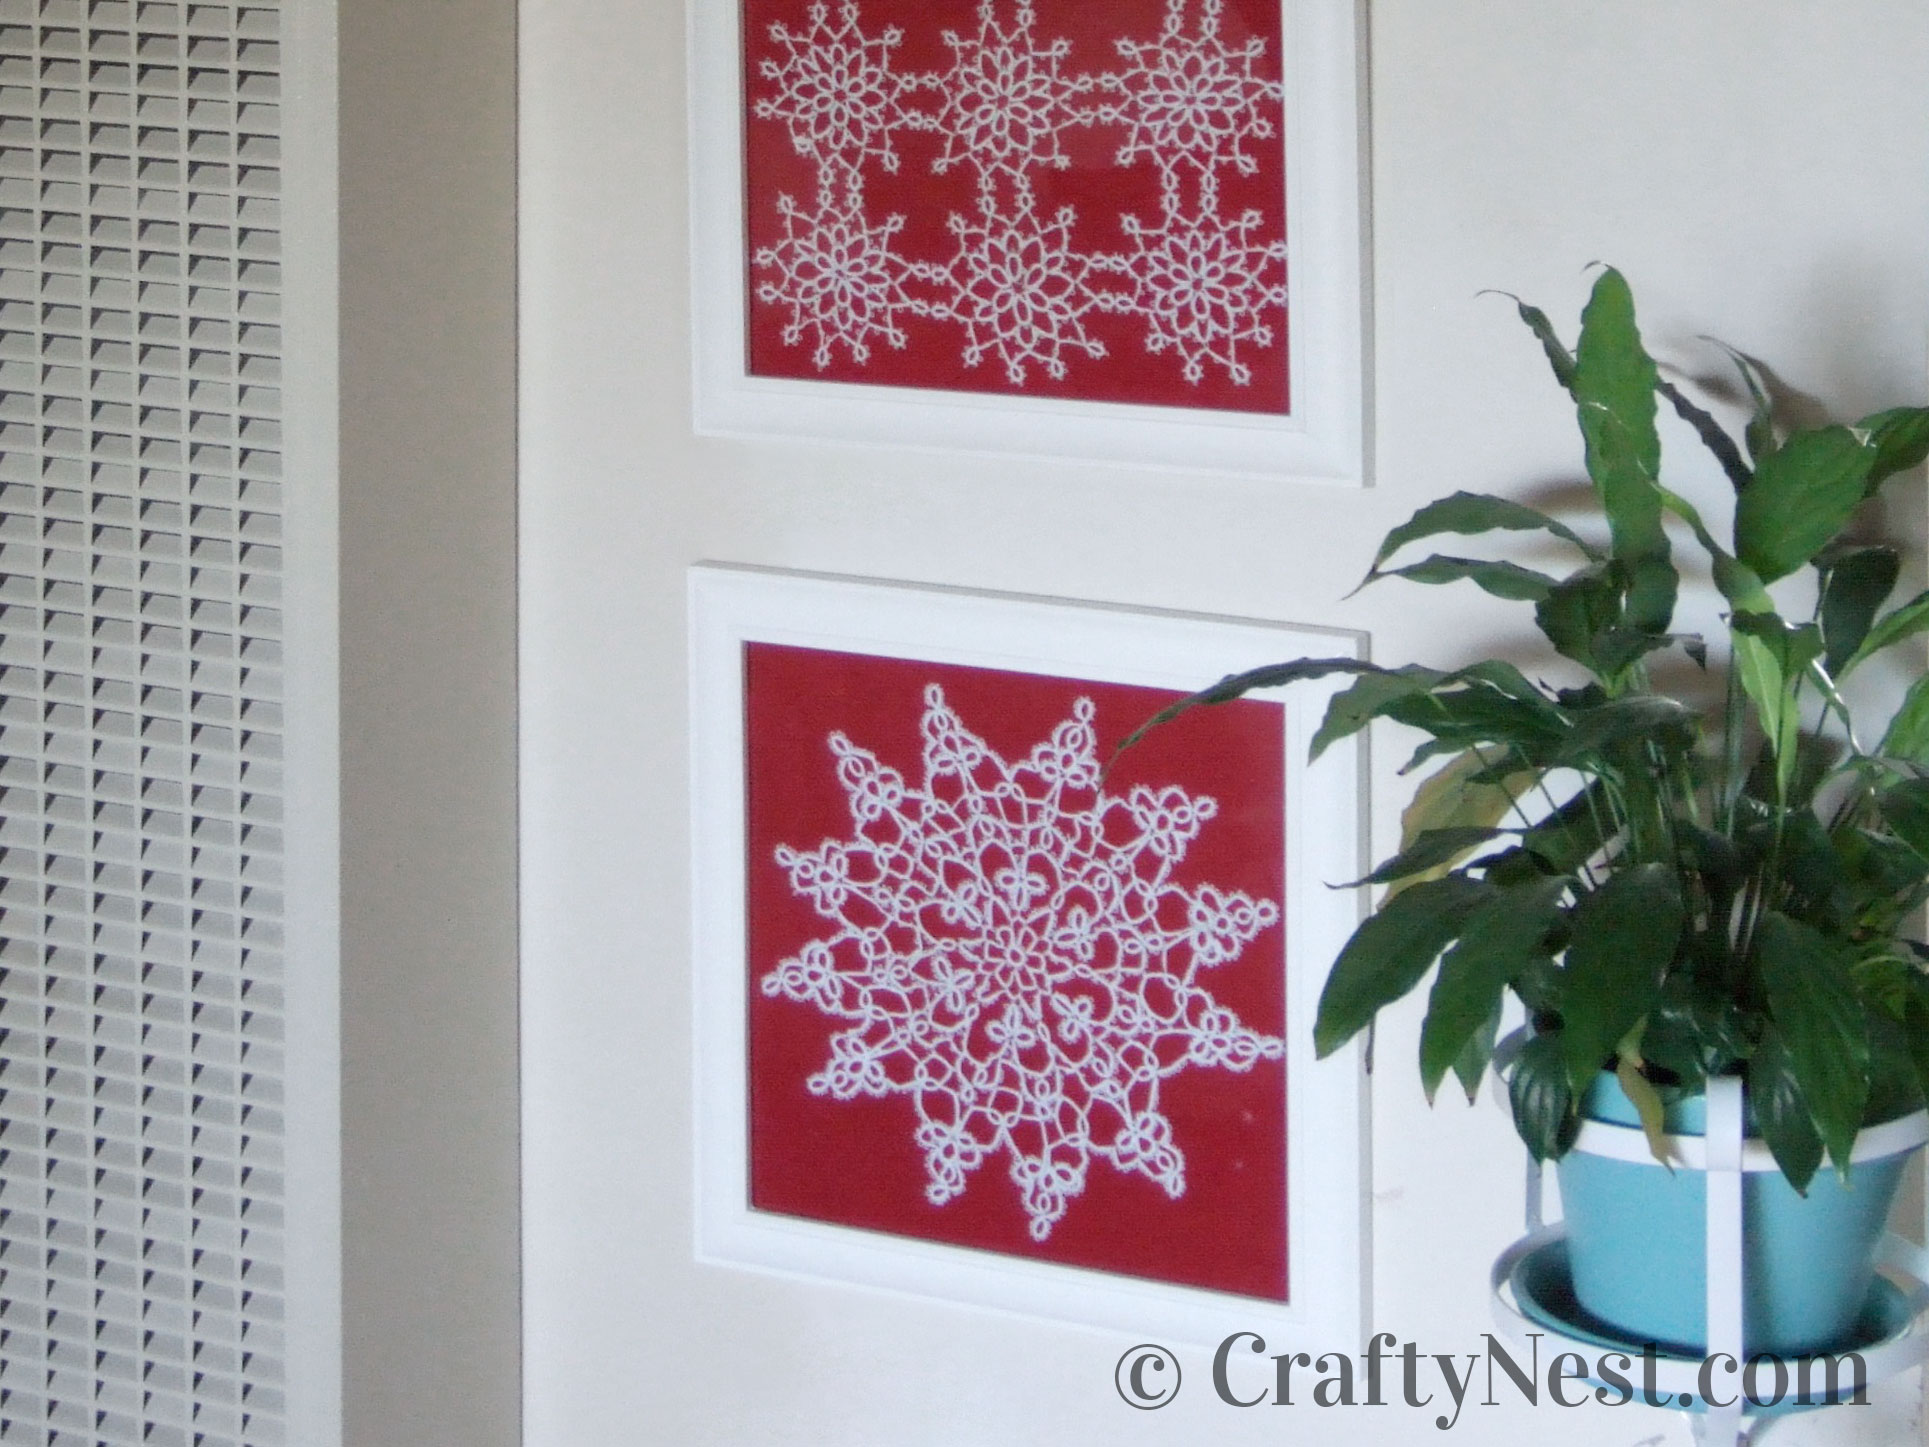 Three framed doilies with red backgrounds, photo